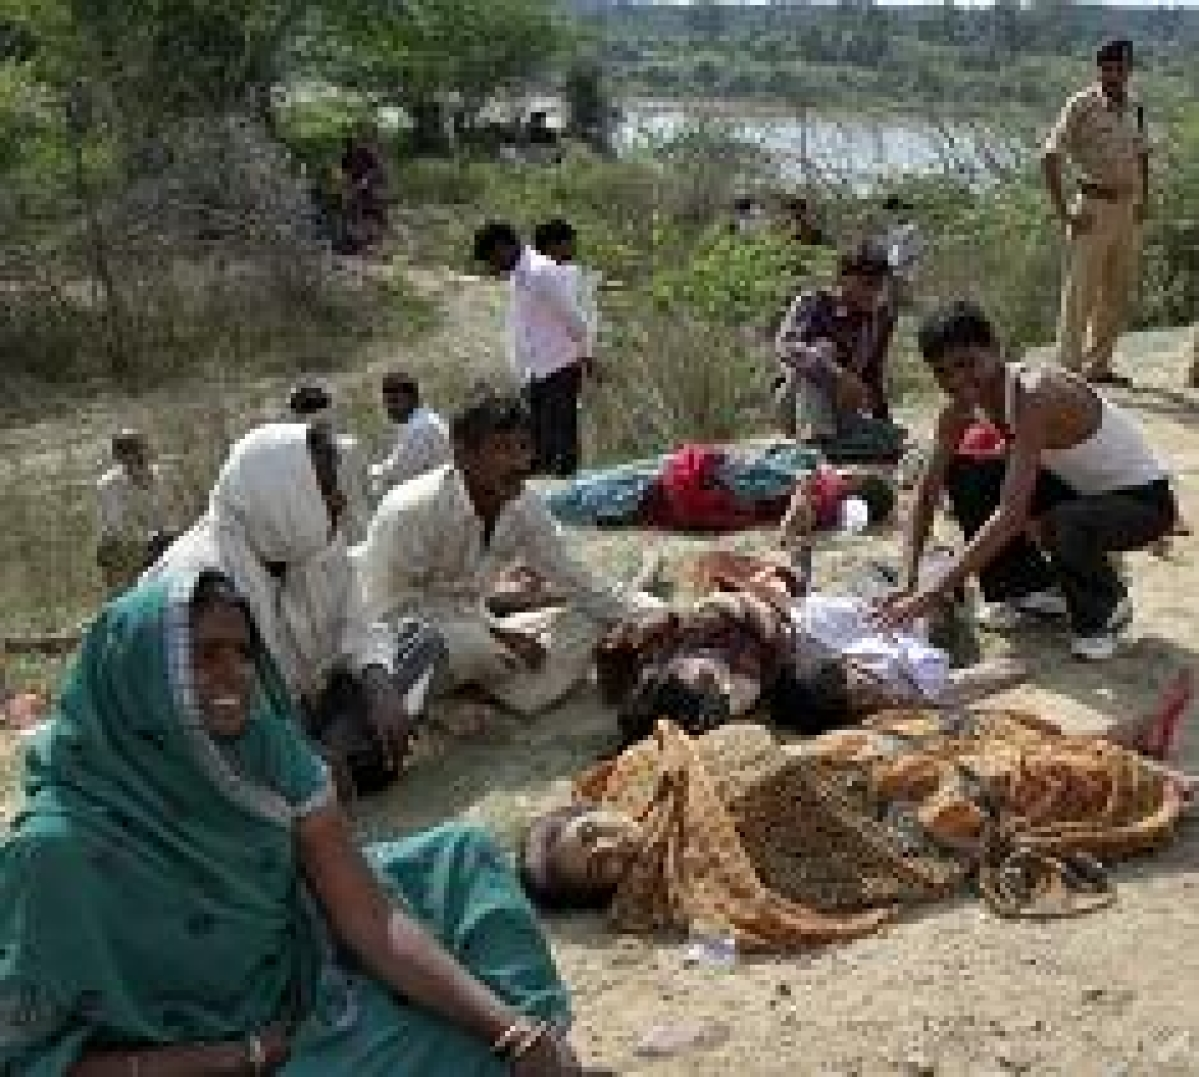 50 Uttar Pradesh people killed in MP stampede